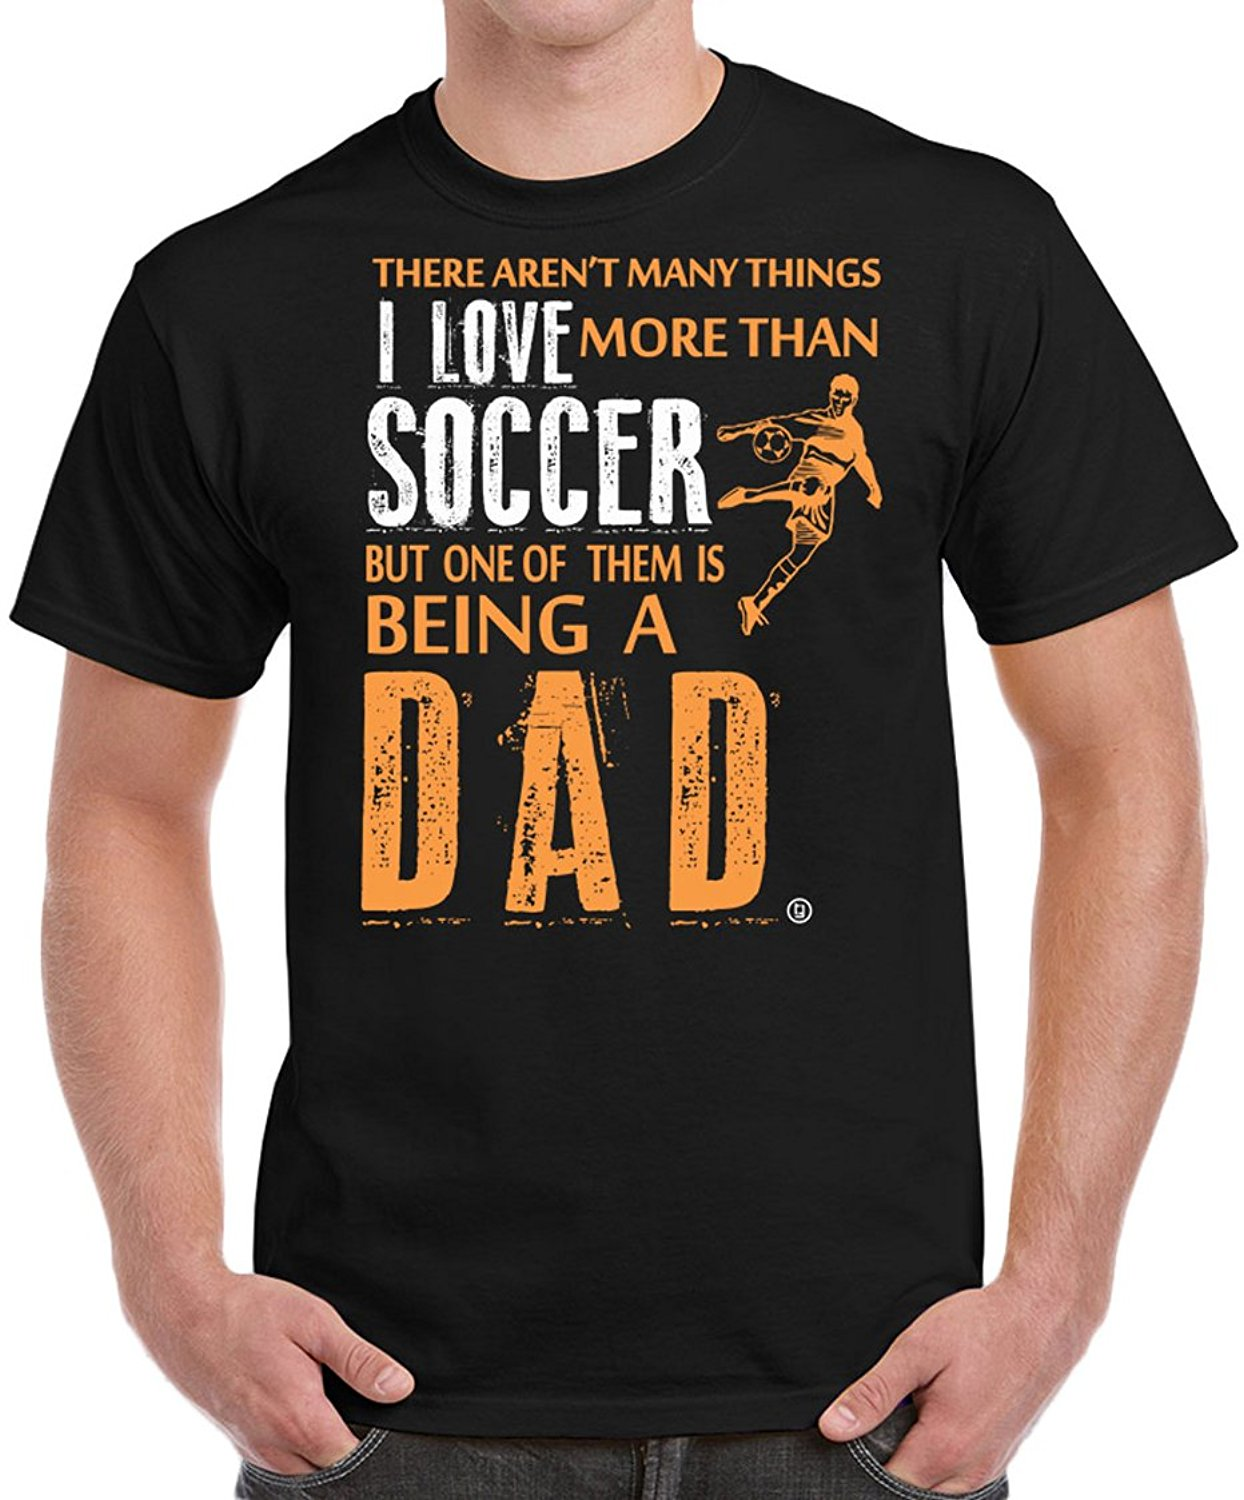 New Men Summer Tops Casuals Shirts Soccerite Dad Fathers Day Gifts Birthday Gifts I Love Soccerite Men's T-shirt